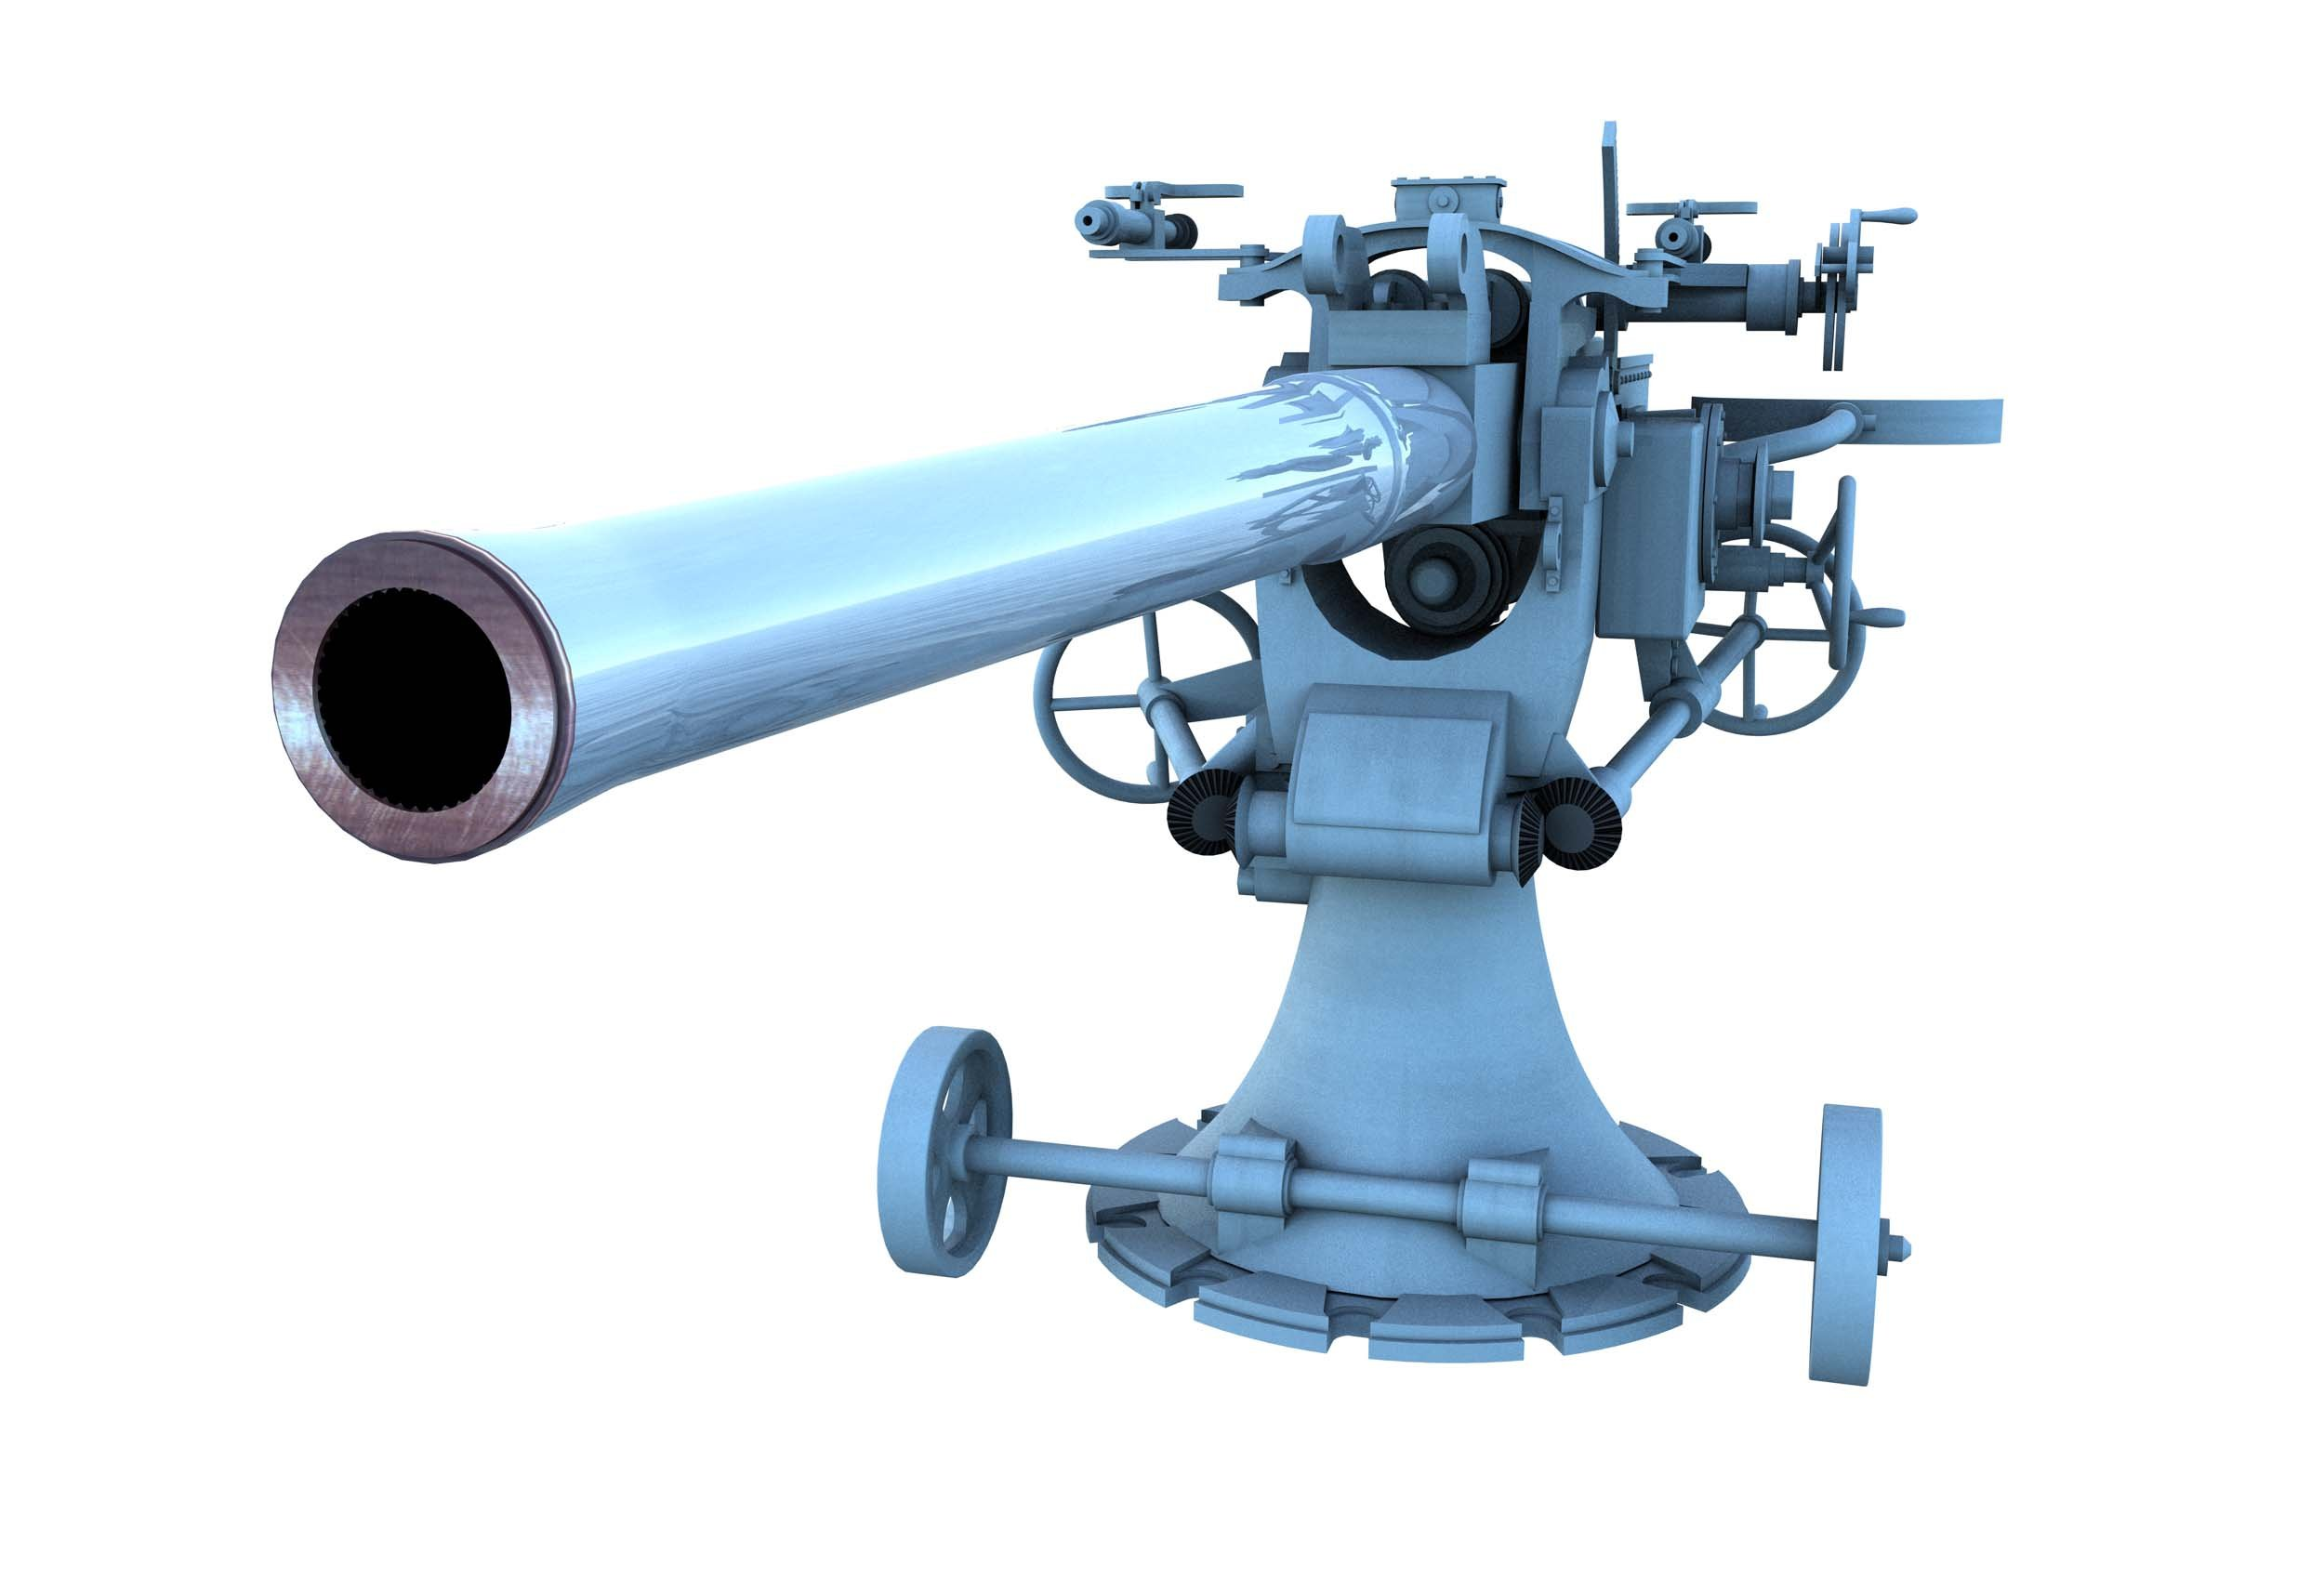 https://0901.nccdn.net/4_2/000/000/07d/95b/CK56-Individual-7cm-AT-Gun-Front-Side.jpg